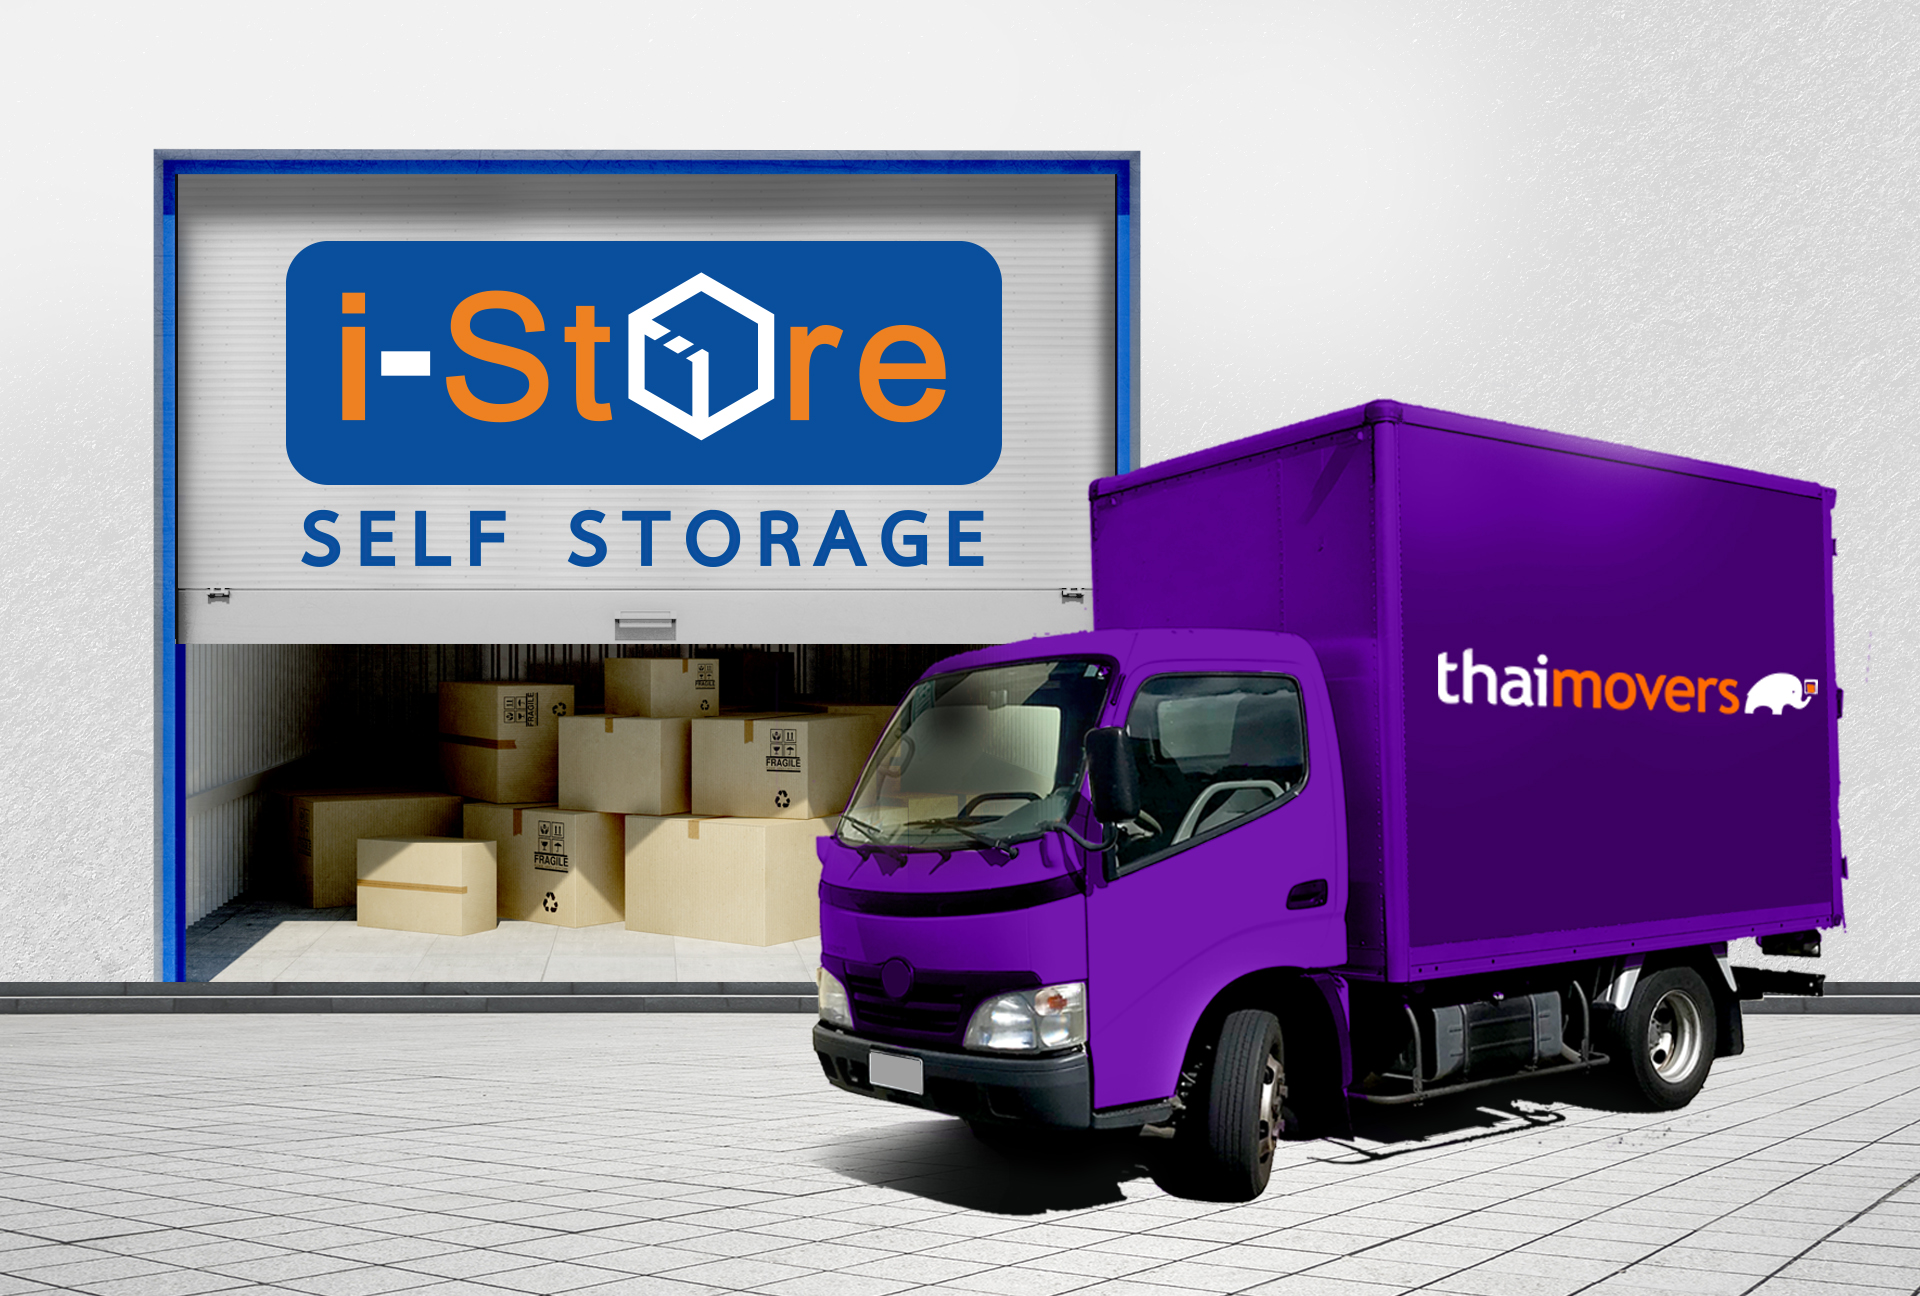 Thaimovers & i-Store